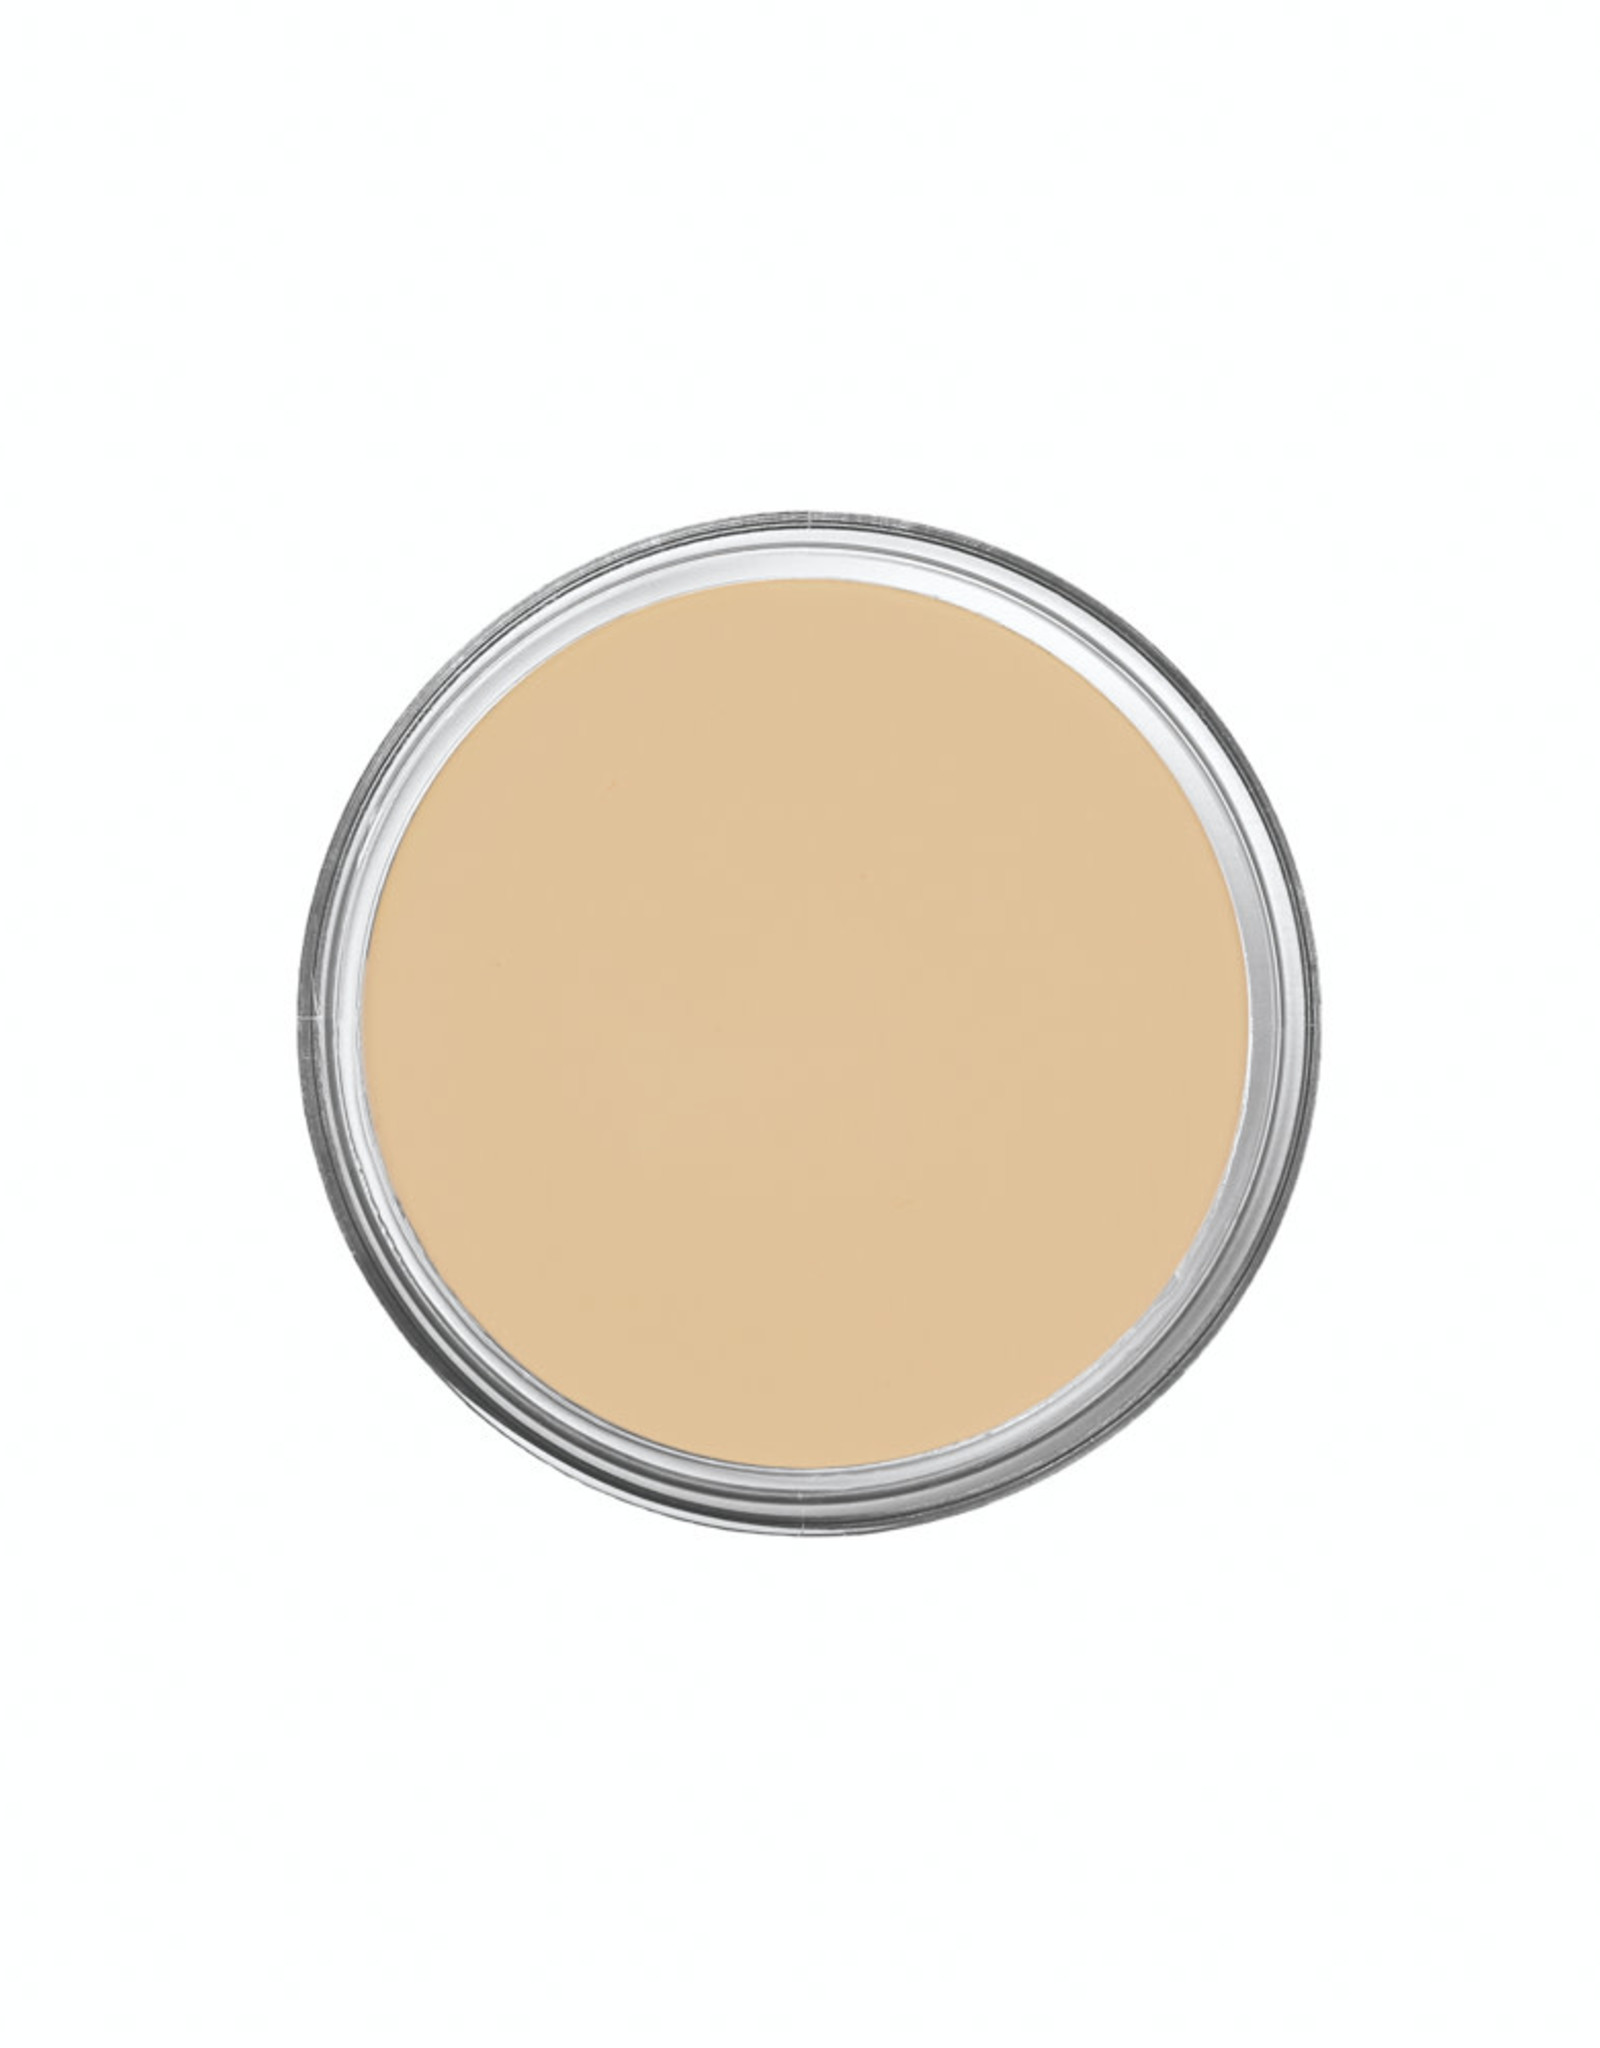 Ben Nye FOUNDATION-MATTE HD,PALEBISCOTTE.5 OZ